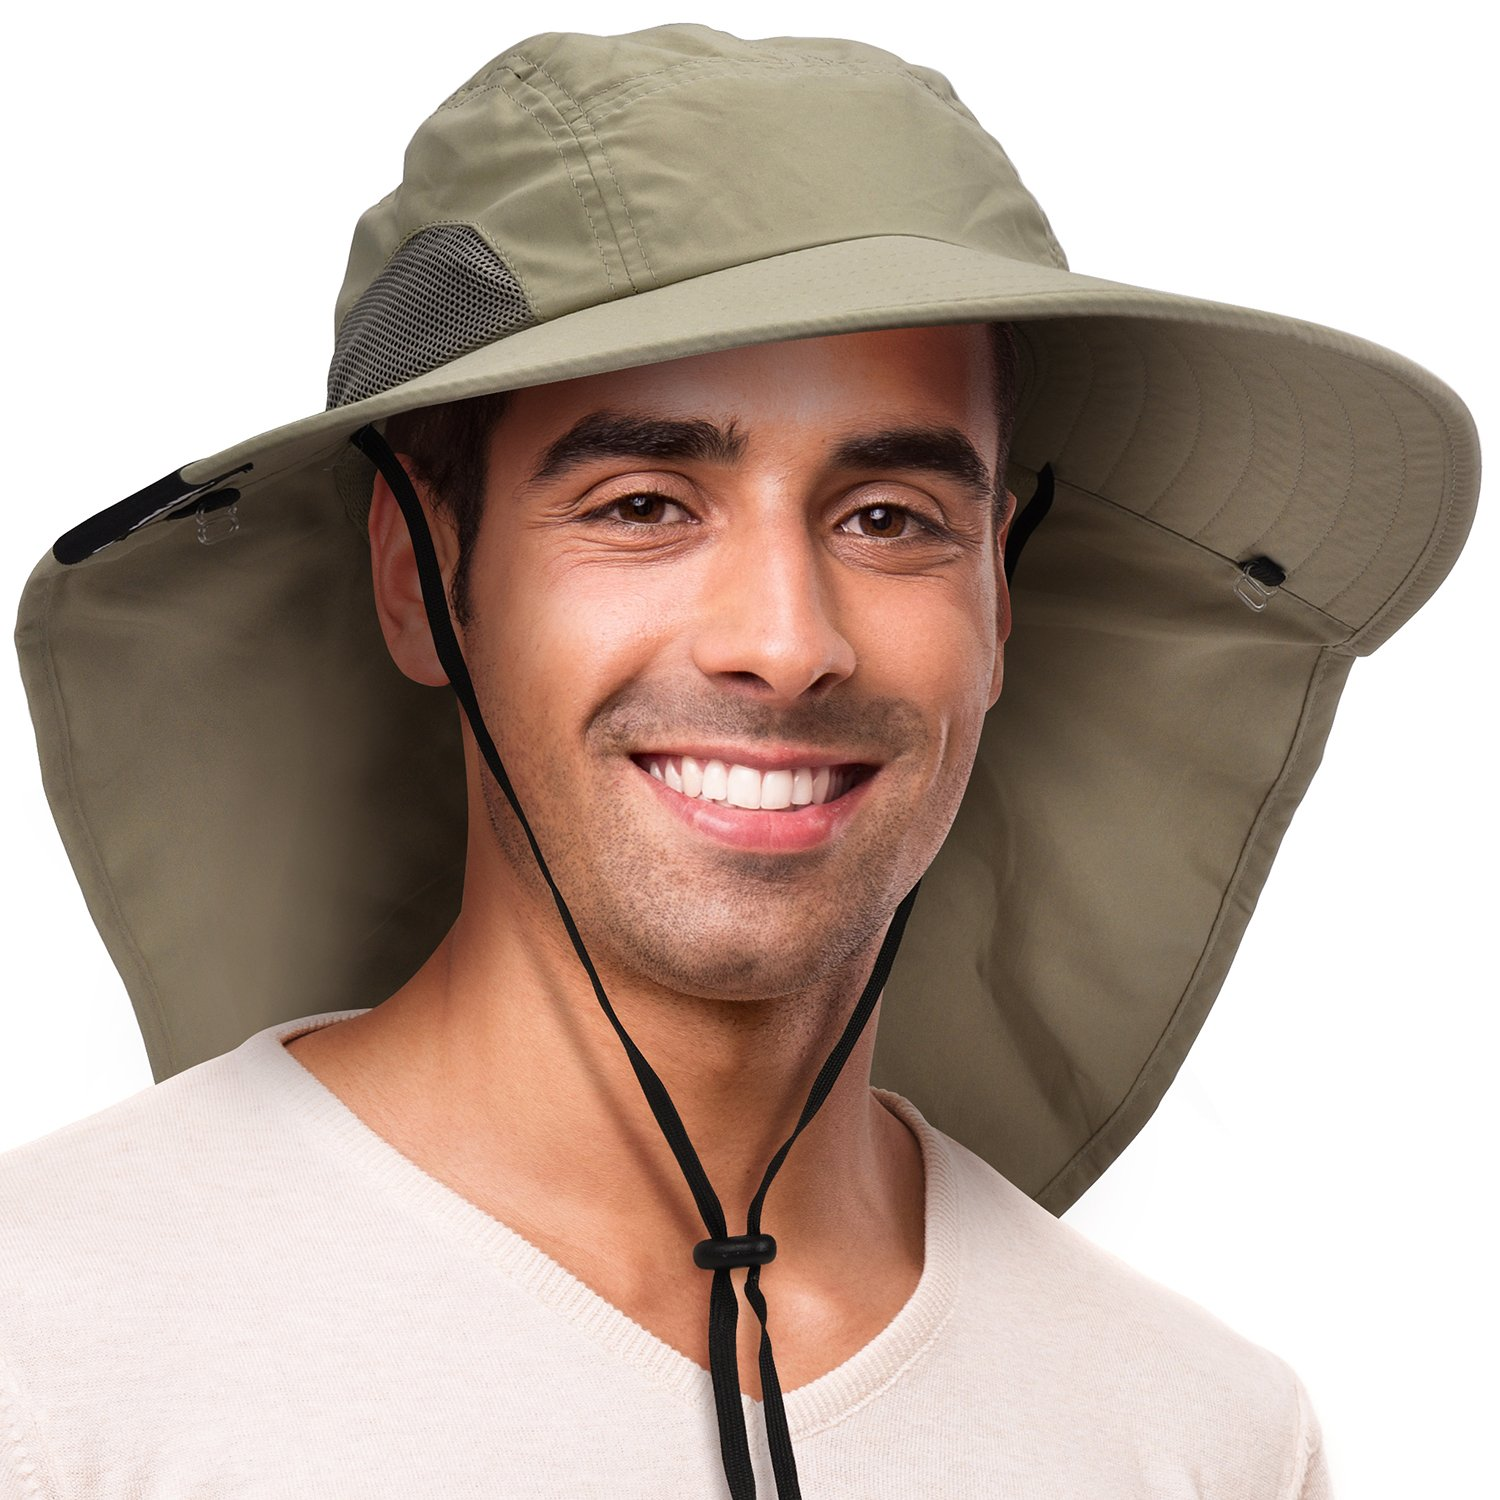 Solaris Outdoor Fishing Hat with Ear Neck Flap Cover Wide Brim Sun Protection Safari Cap for Men Women Hunting, Hiking, Camping, Boating & Outdoor Adventures by Solaris